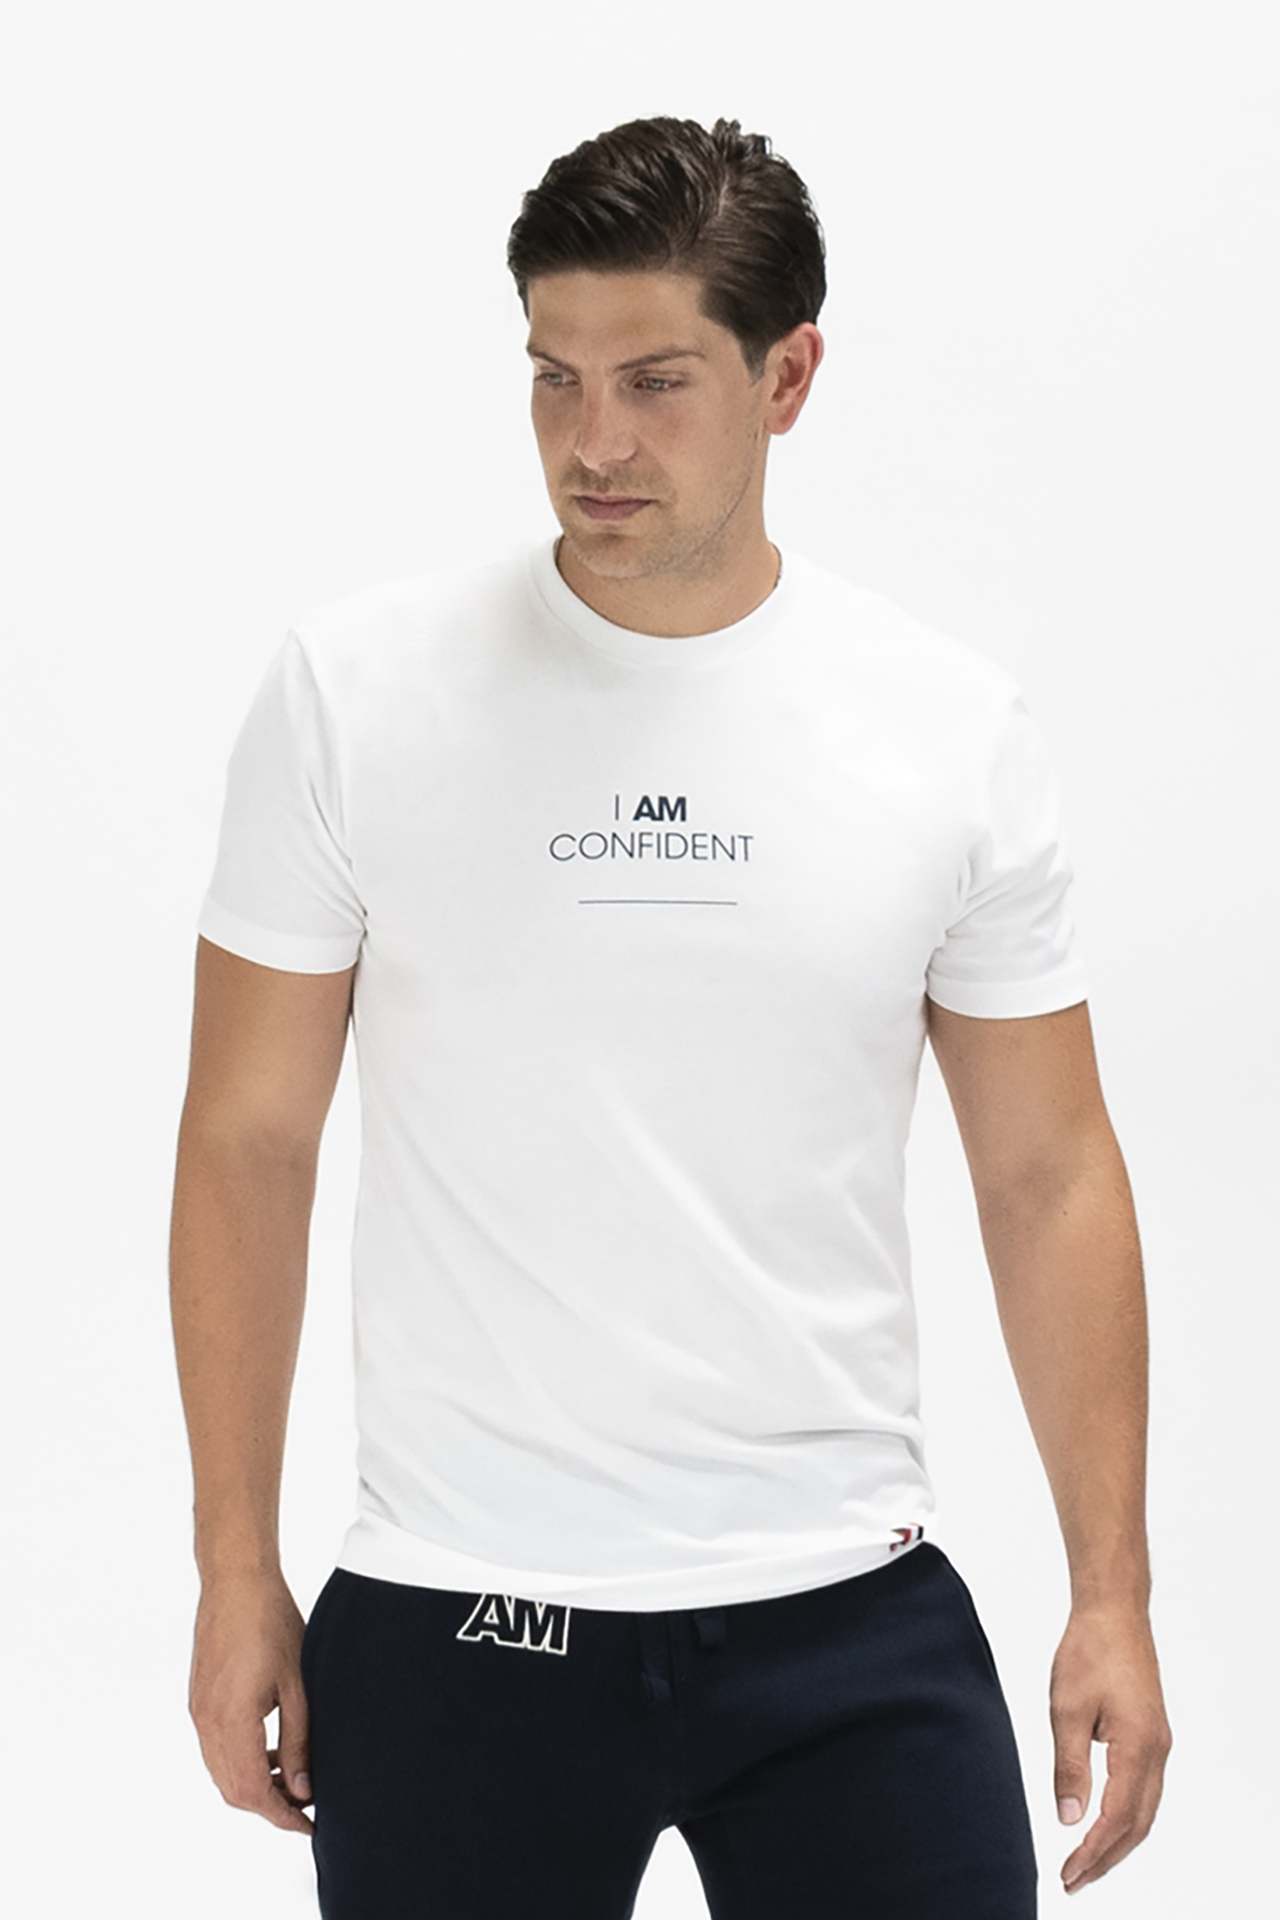 I AM CONFIDENT T-shirt in White